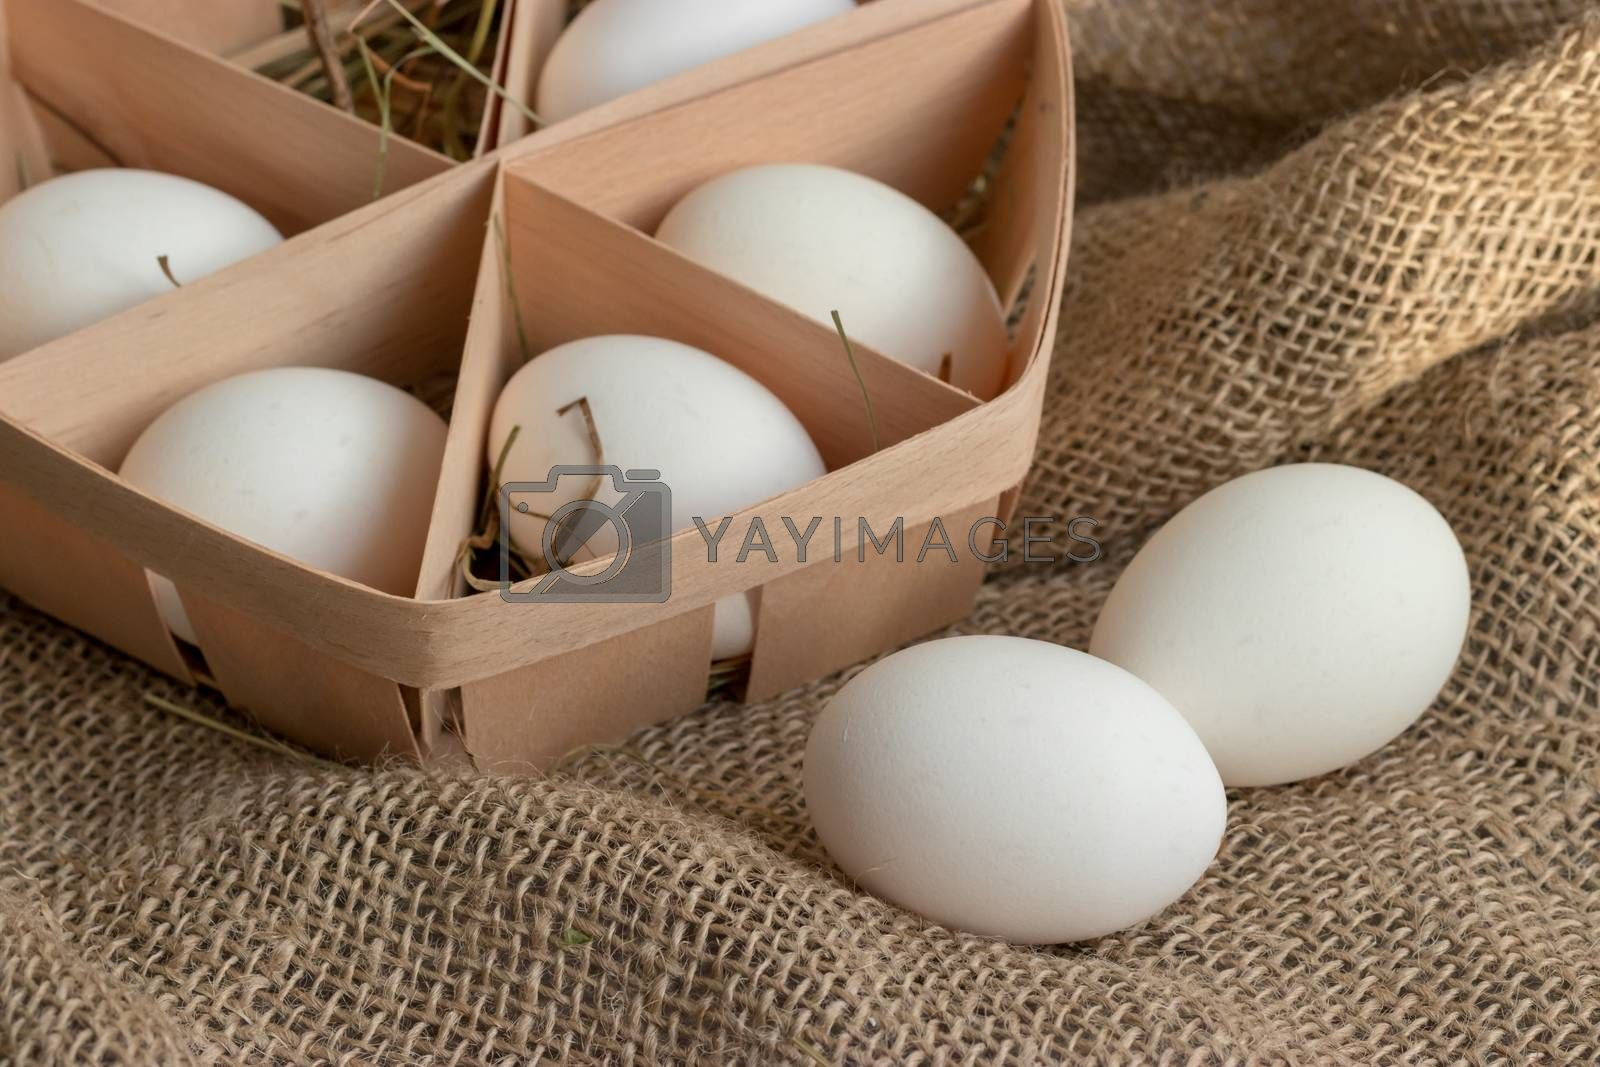 White eggs in the straw close-up in a rustic style by clusterx